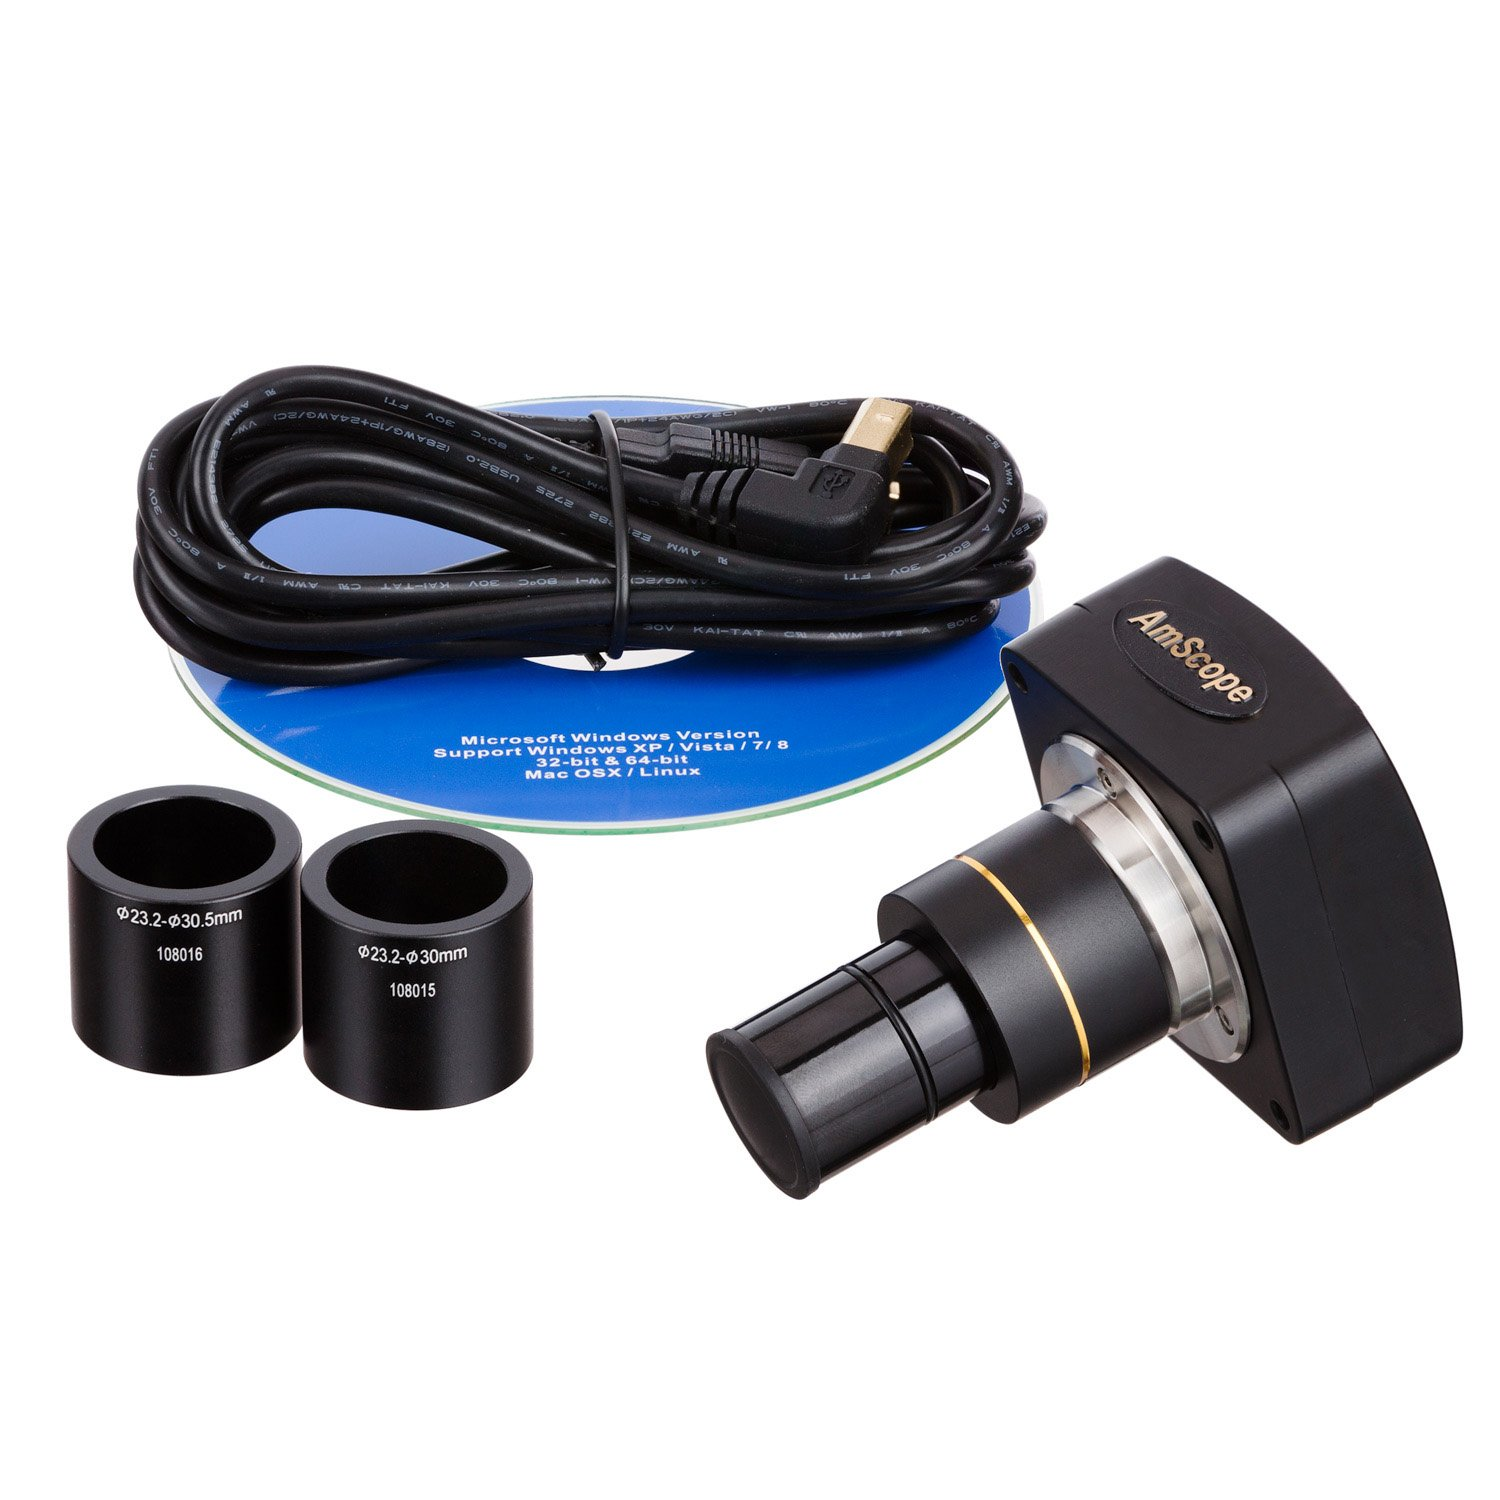 AmScope MU1000 10MP Digital Microscope Camera for Still and Video Images, 40x Magnification, 0.5x Reduction Lens, Eye Tube or C-Mount, USB 2.0 Output, Includes Software by AmScope